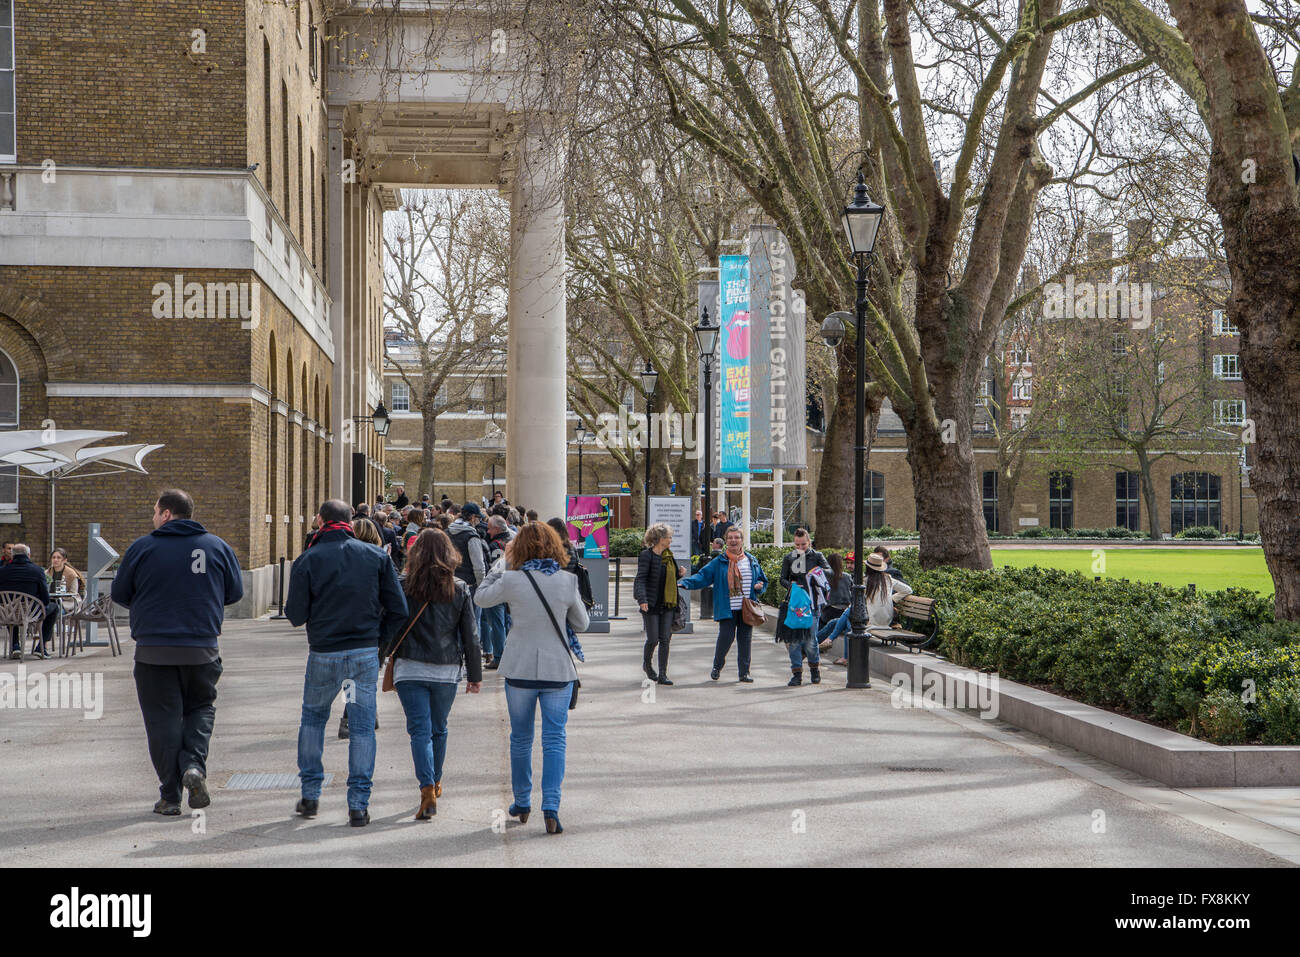 People making their way into the Rolling Stone exhibition at the Saatchi Gallery in Kings Road, Chelsea, London. - Stock Image